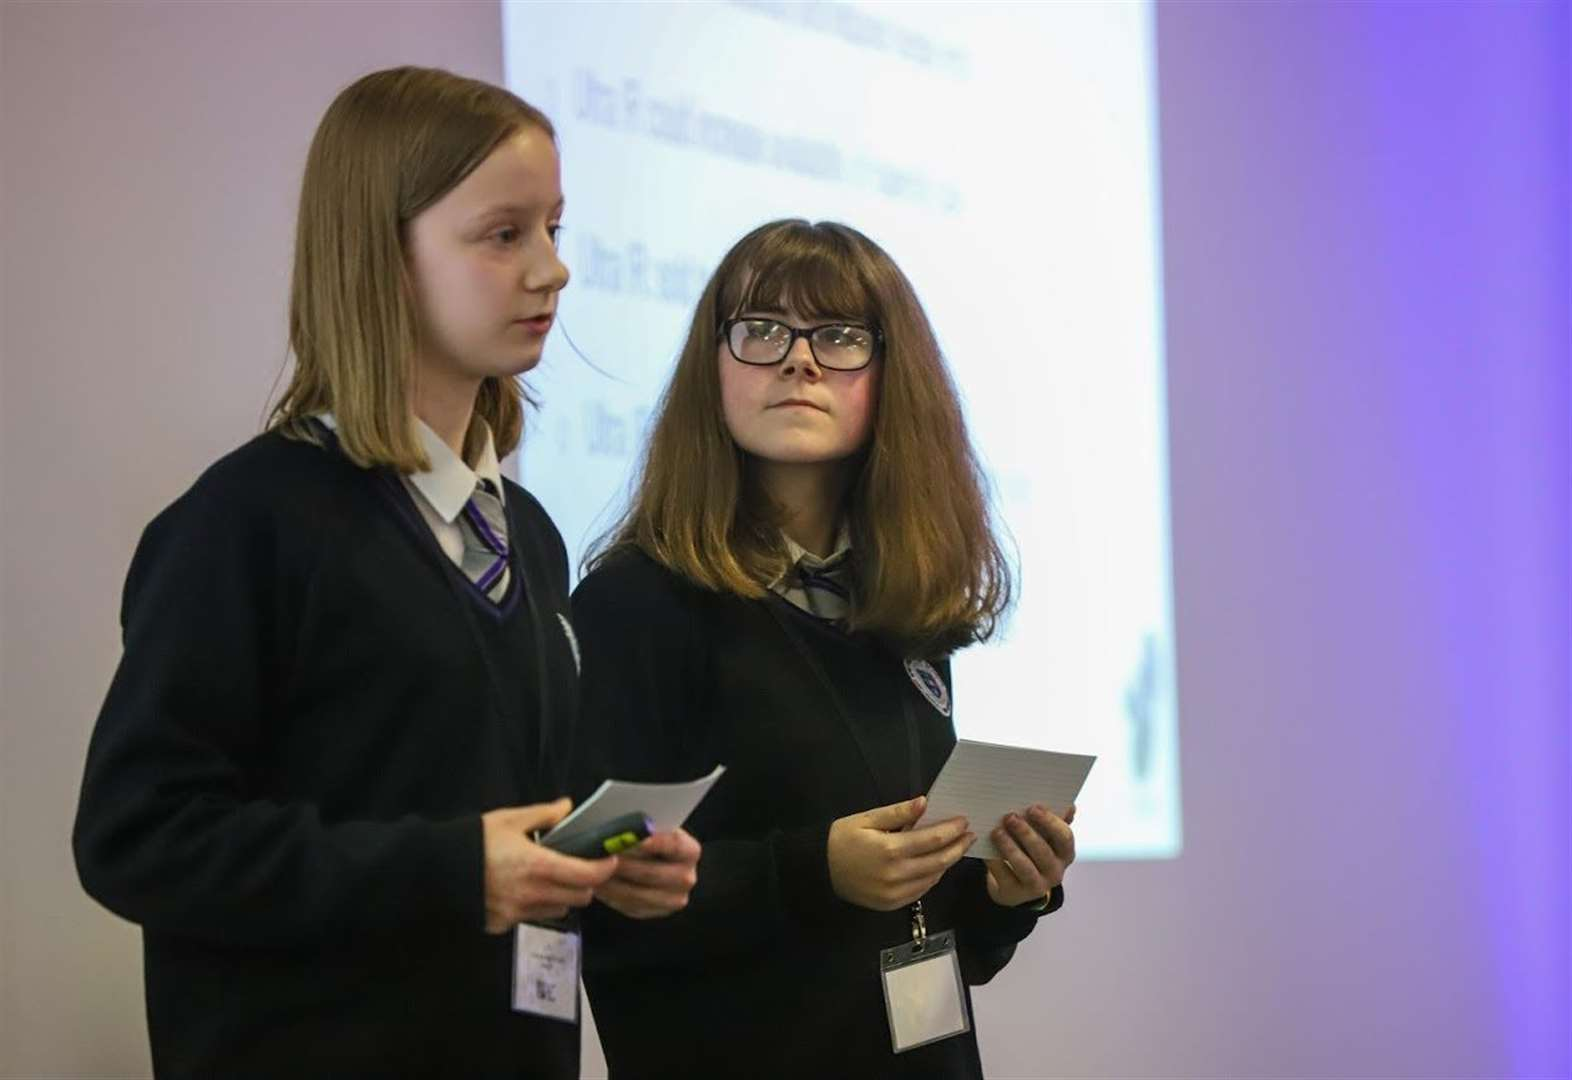 Moray girls beat 26,000 teenagers to win UK technology contest